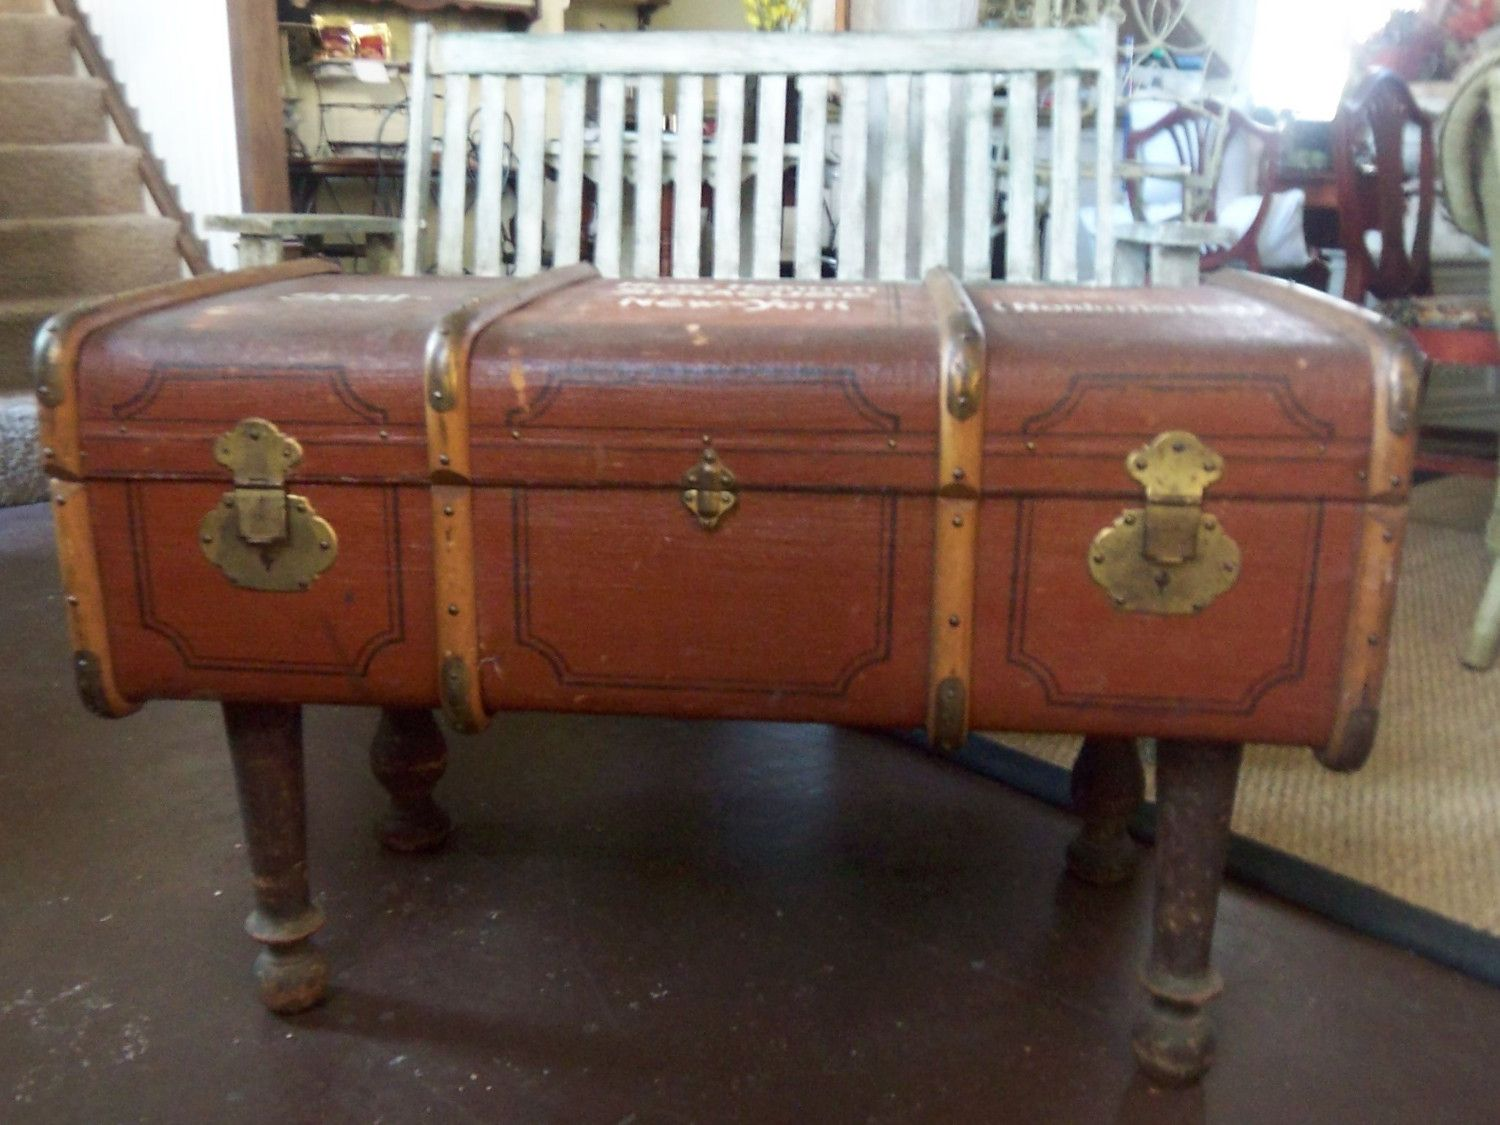 Upcycled Suitcases | Upcycled Suitcases! |